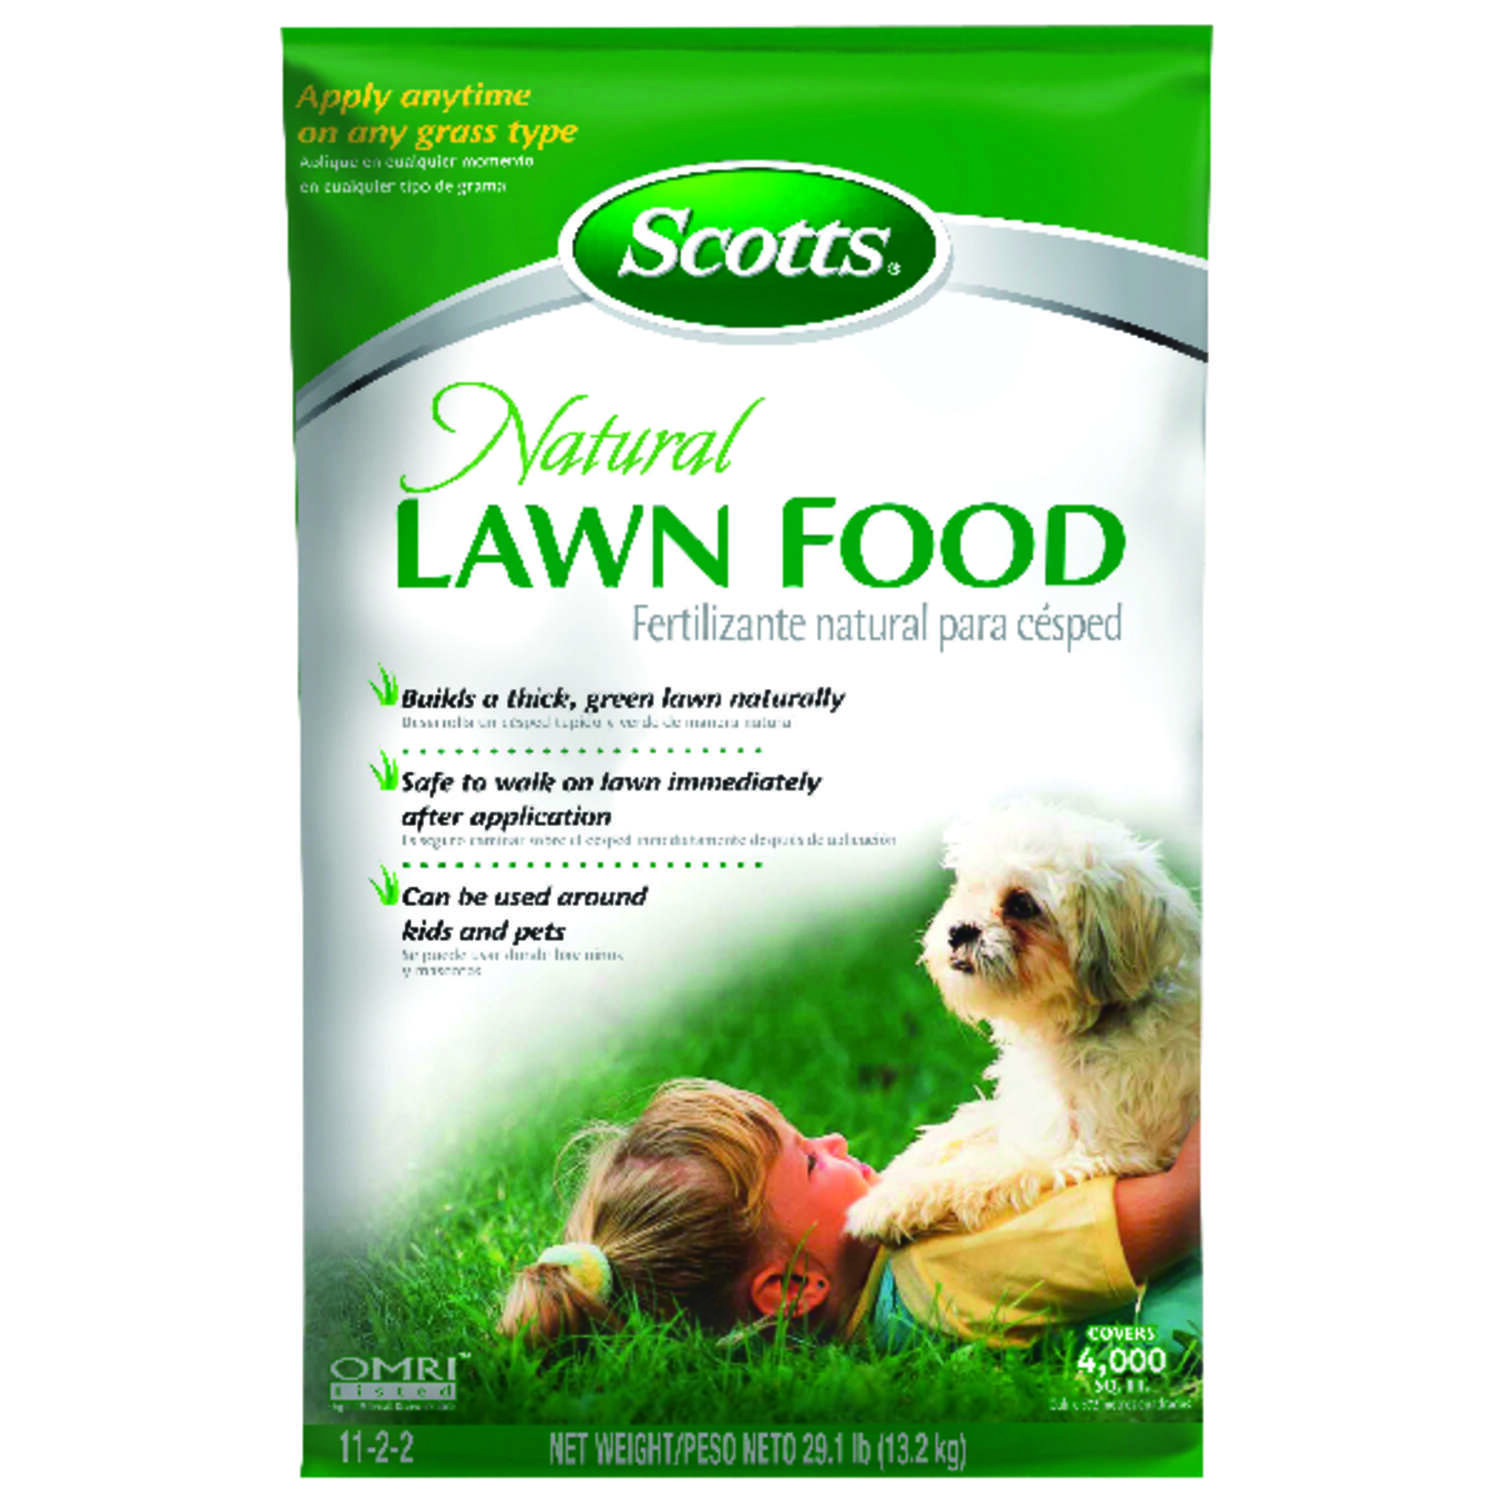 Scotts  Natural  Organic 11-2-2  Lawn Food  For All Grass Types 29.5 lb. 4000 sq. ft.